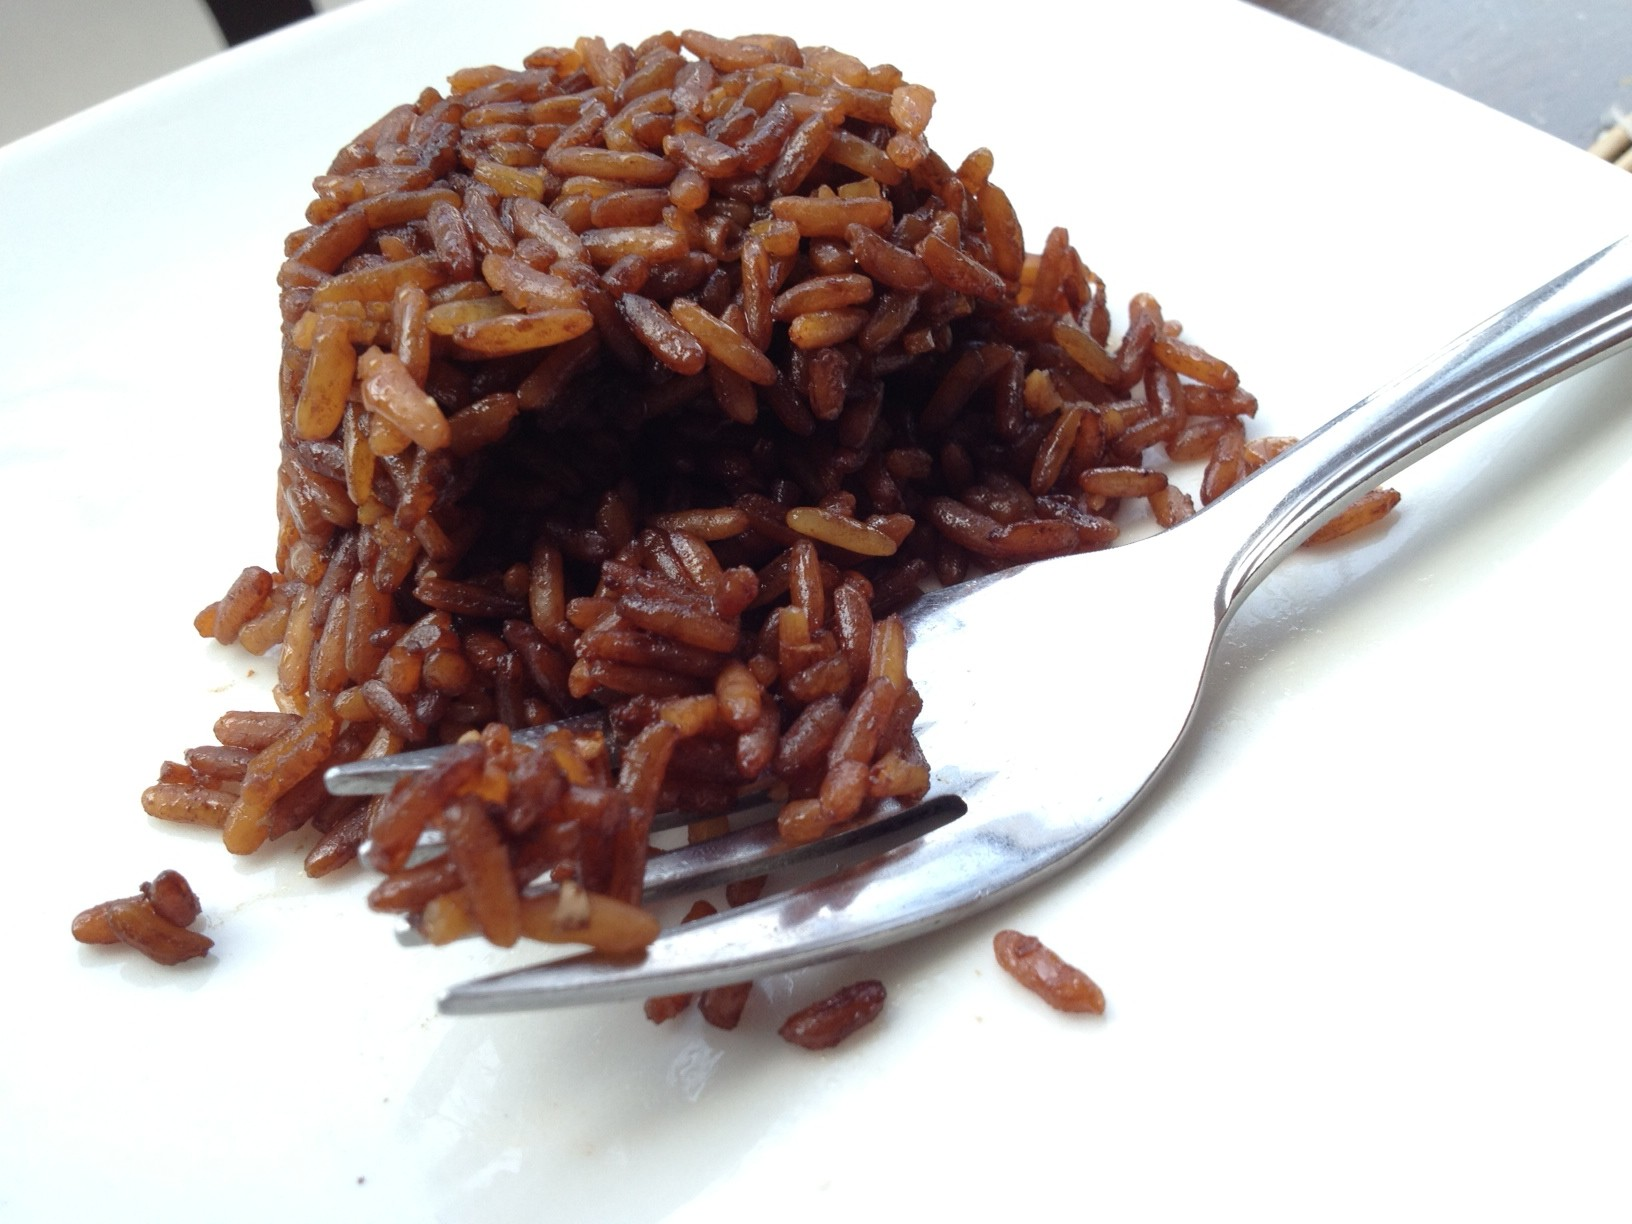 Delicious chocolate rice